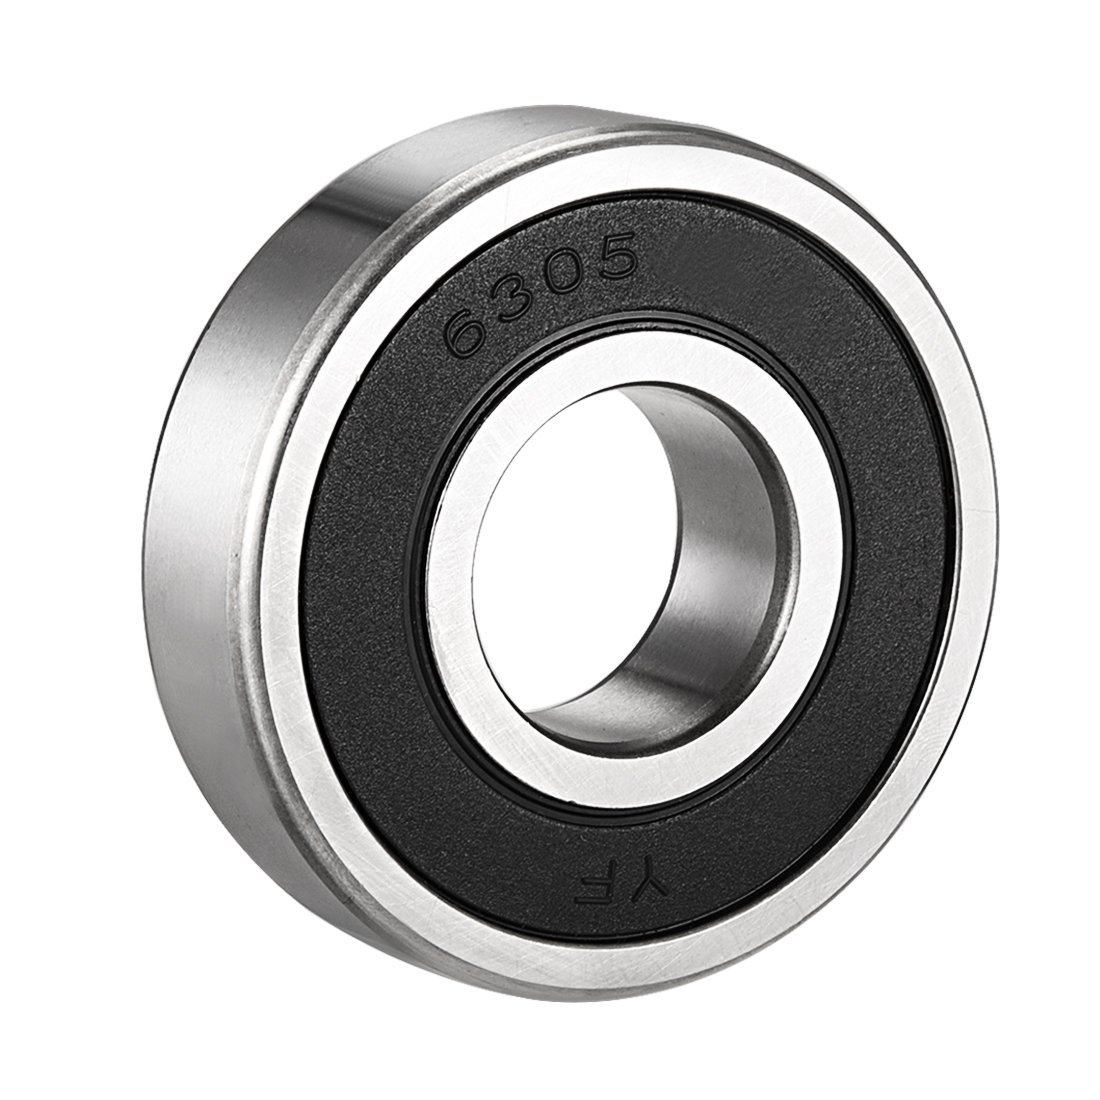 10mm x 30mm x 9mm Chrome Steel Bearings Pack of 1 sourcing map 6200RS Deep Groove Ball Bearing Single Sealed 160200